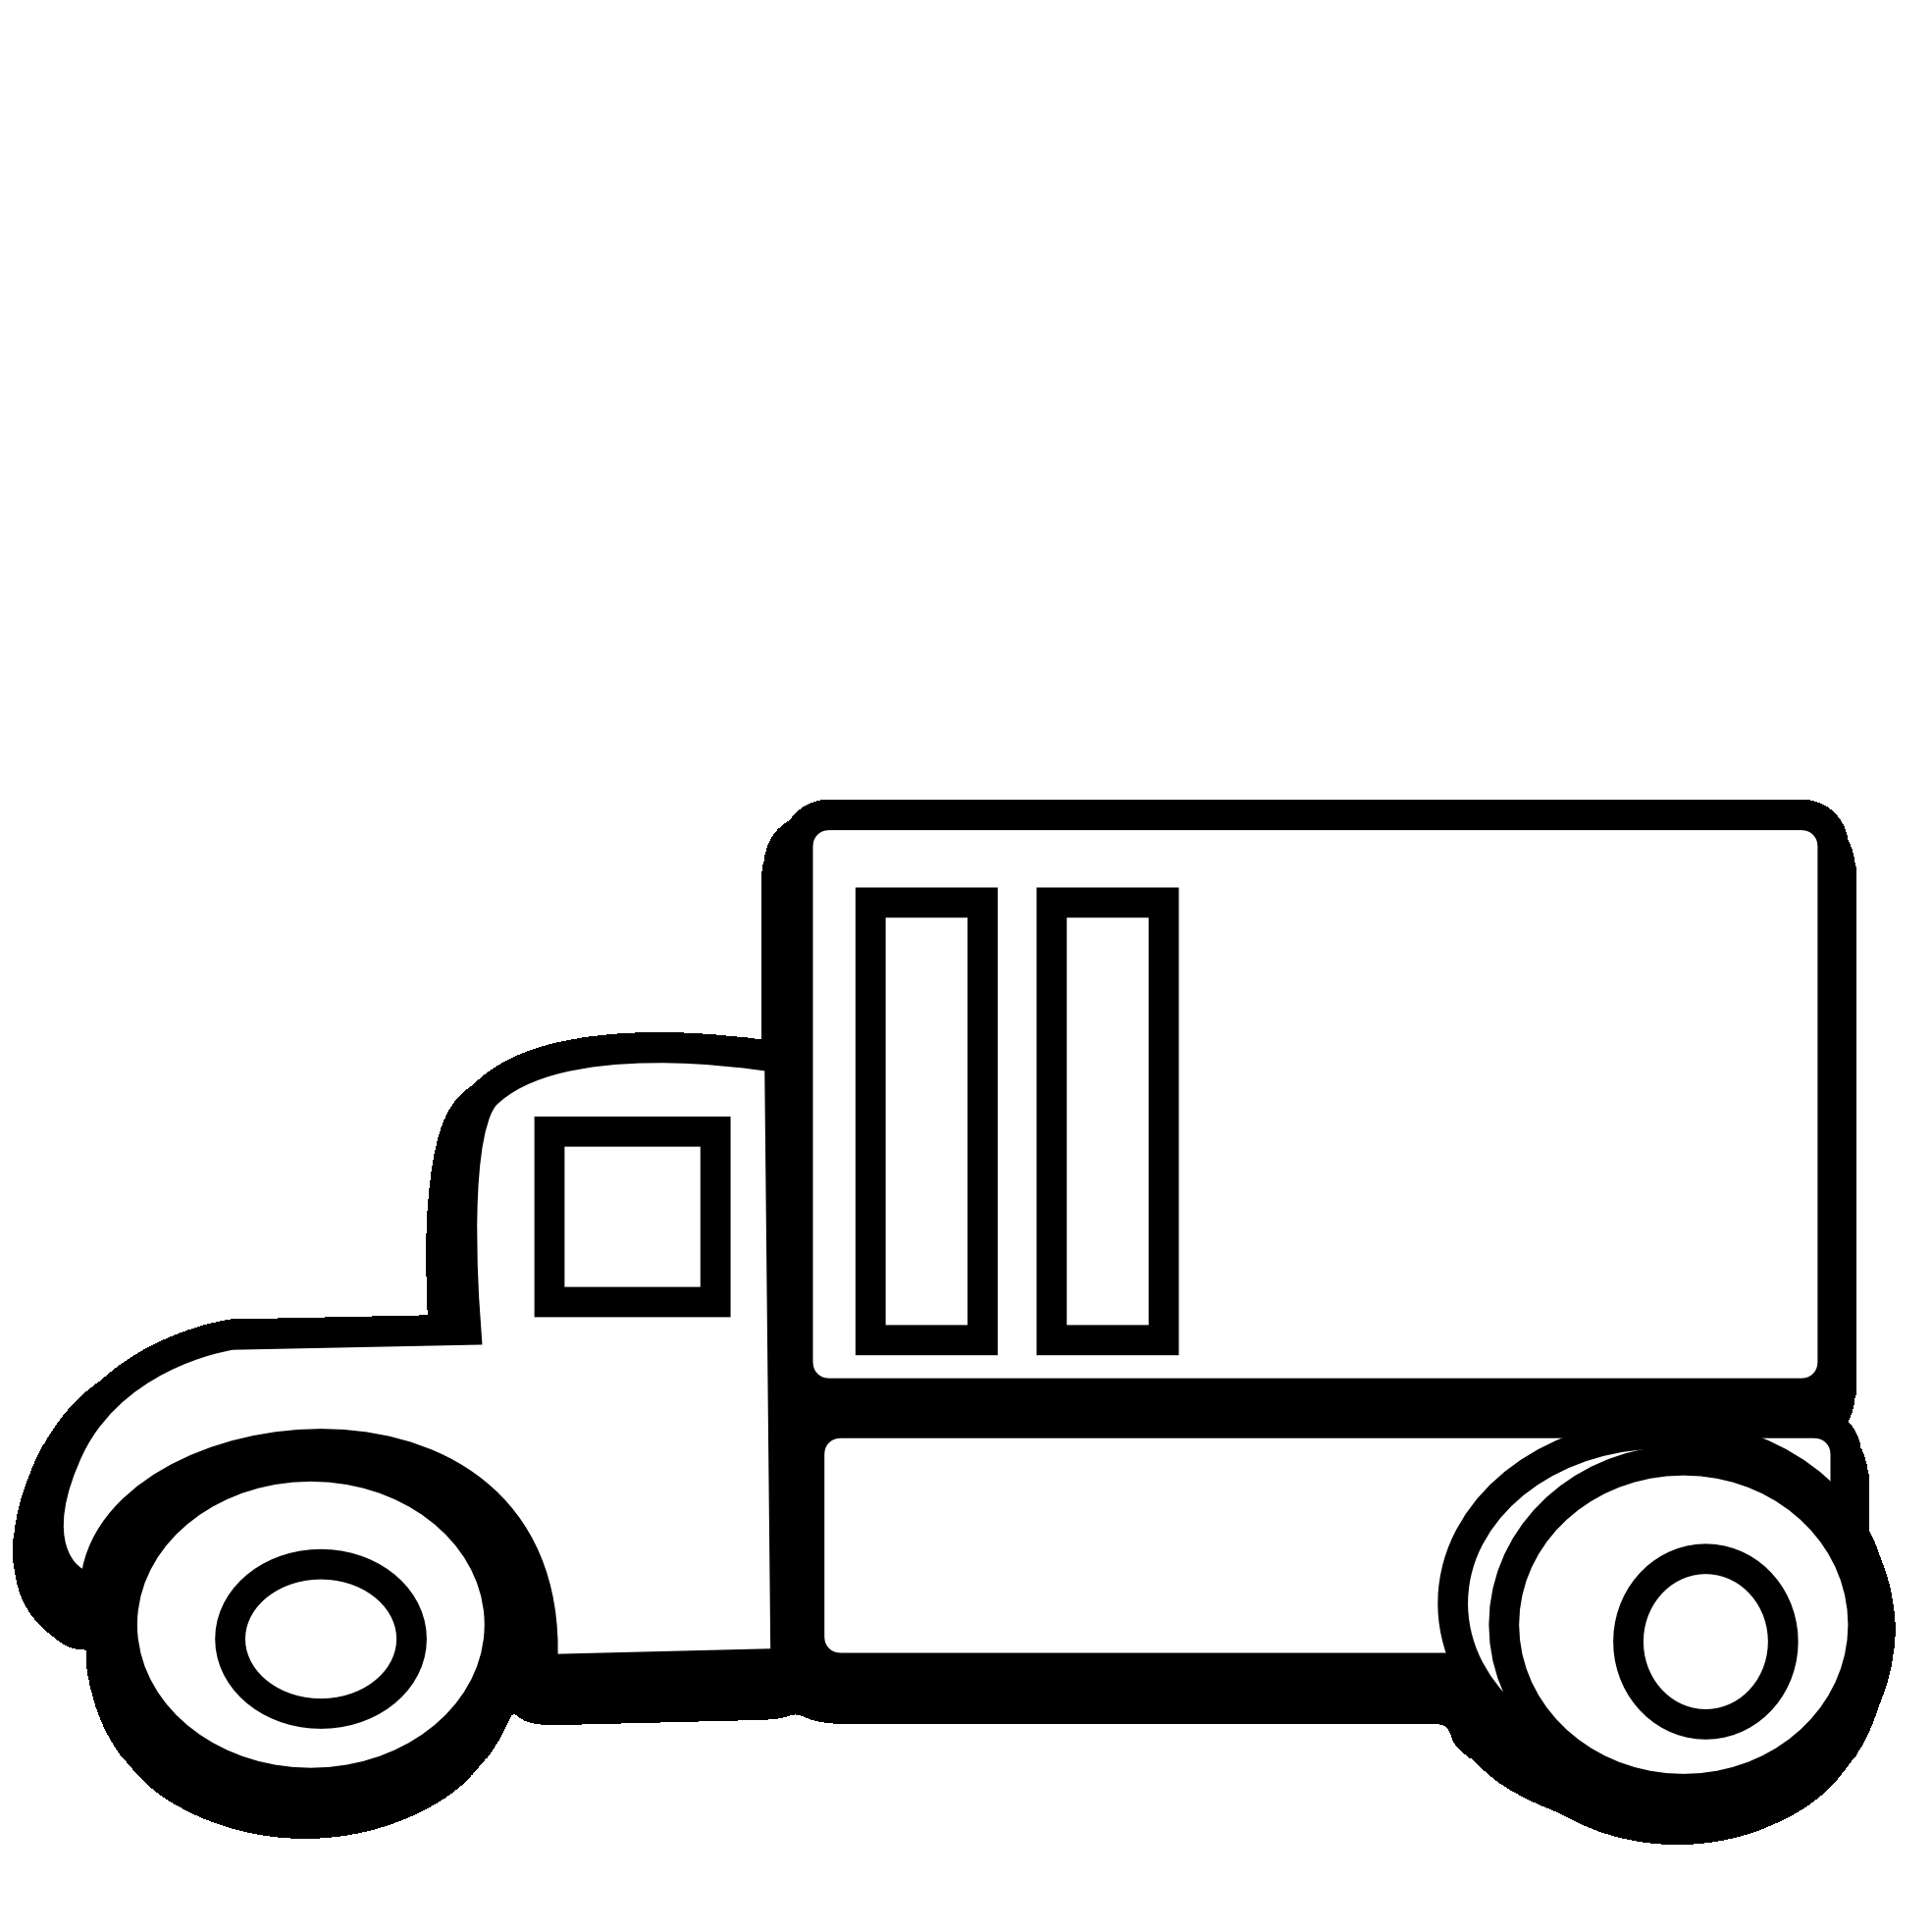 Black and white clipart trucks png freeuse library Free Black Truck Cliparts, Download Free Clip Art, Free Clip Art on ... png freeuse library